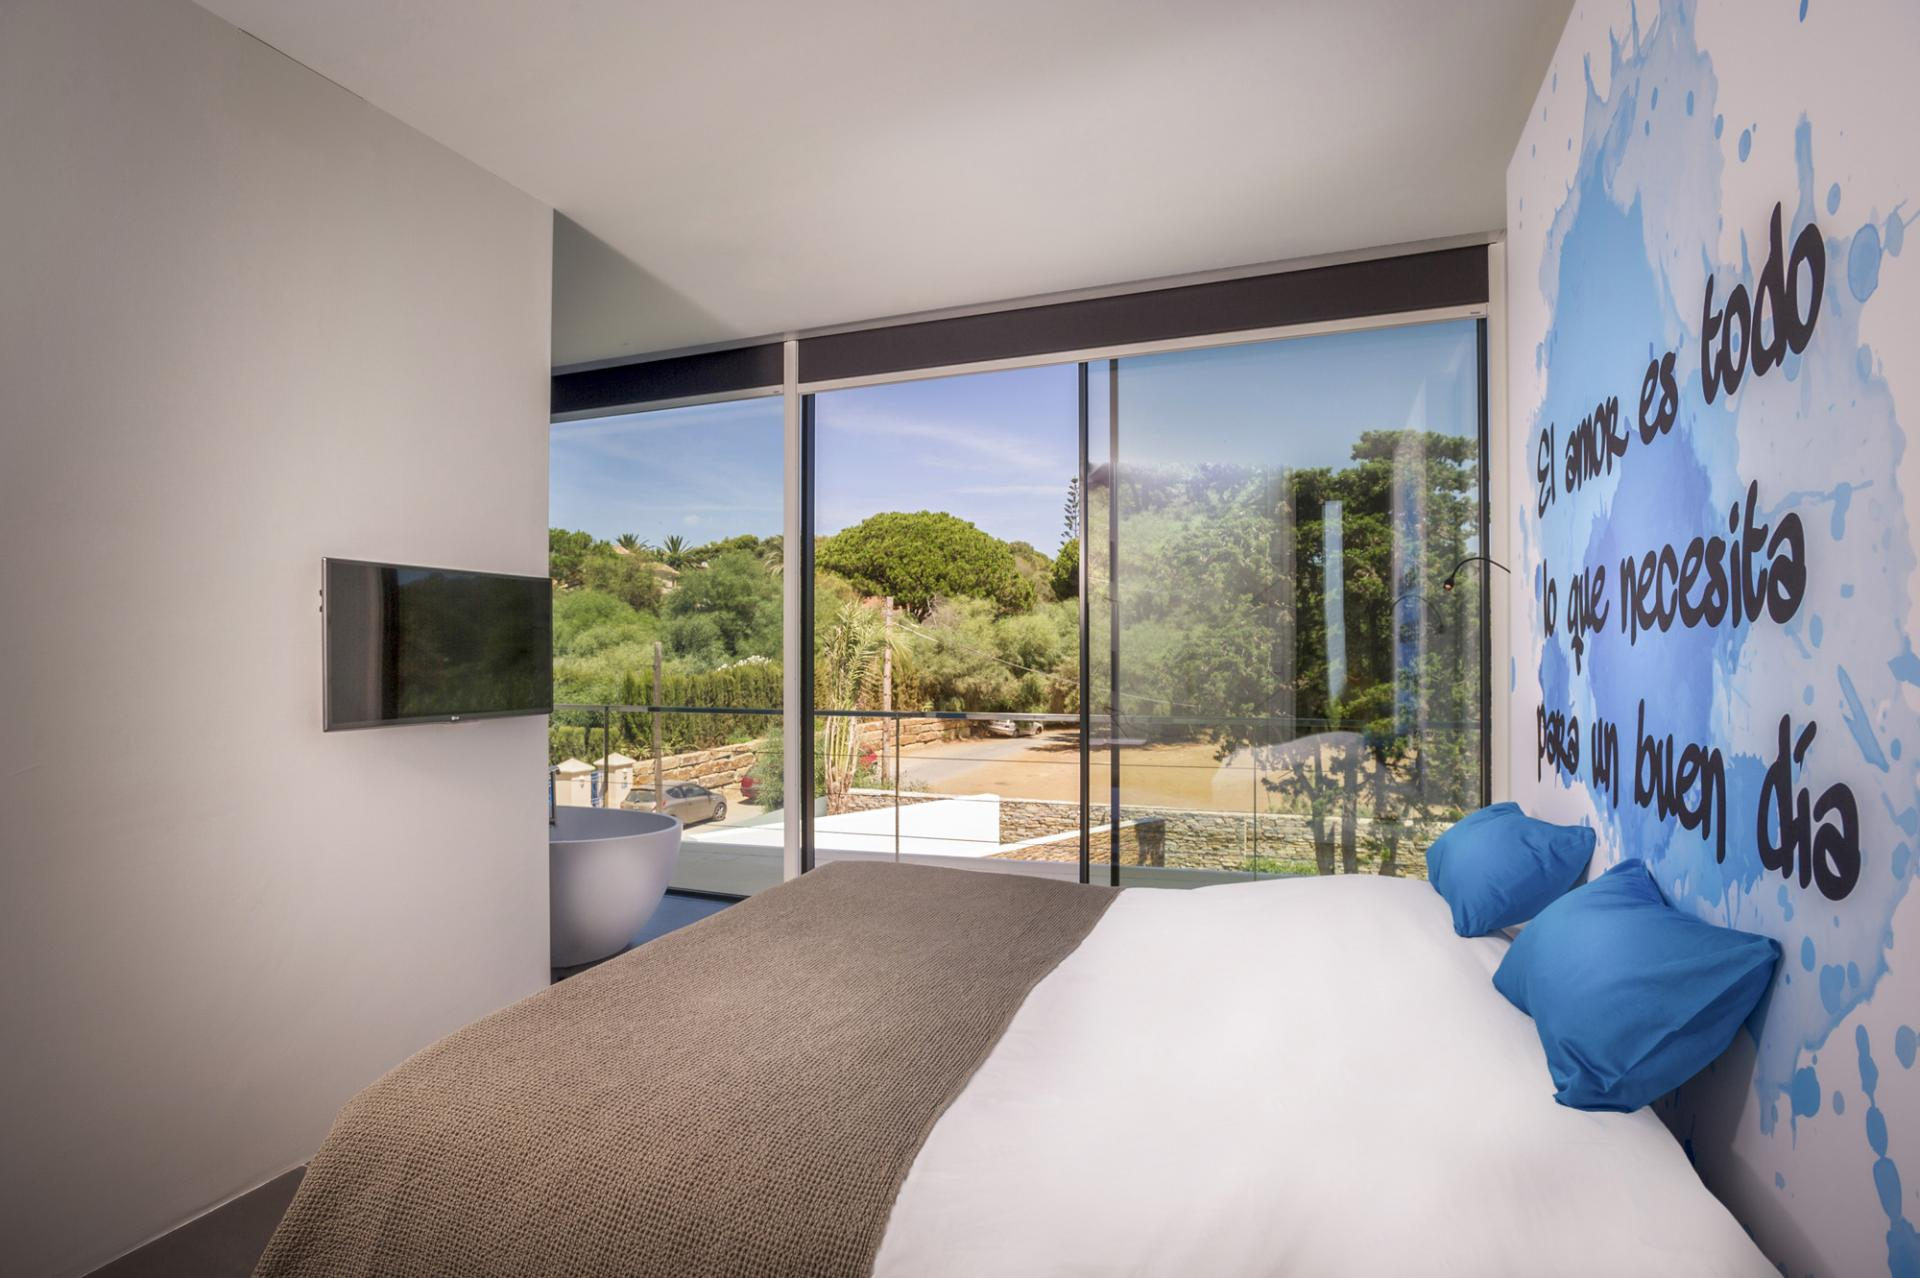 Blue Spanish Bedroom - A cool beachfront villa with geometric architecture